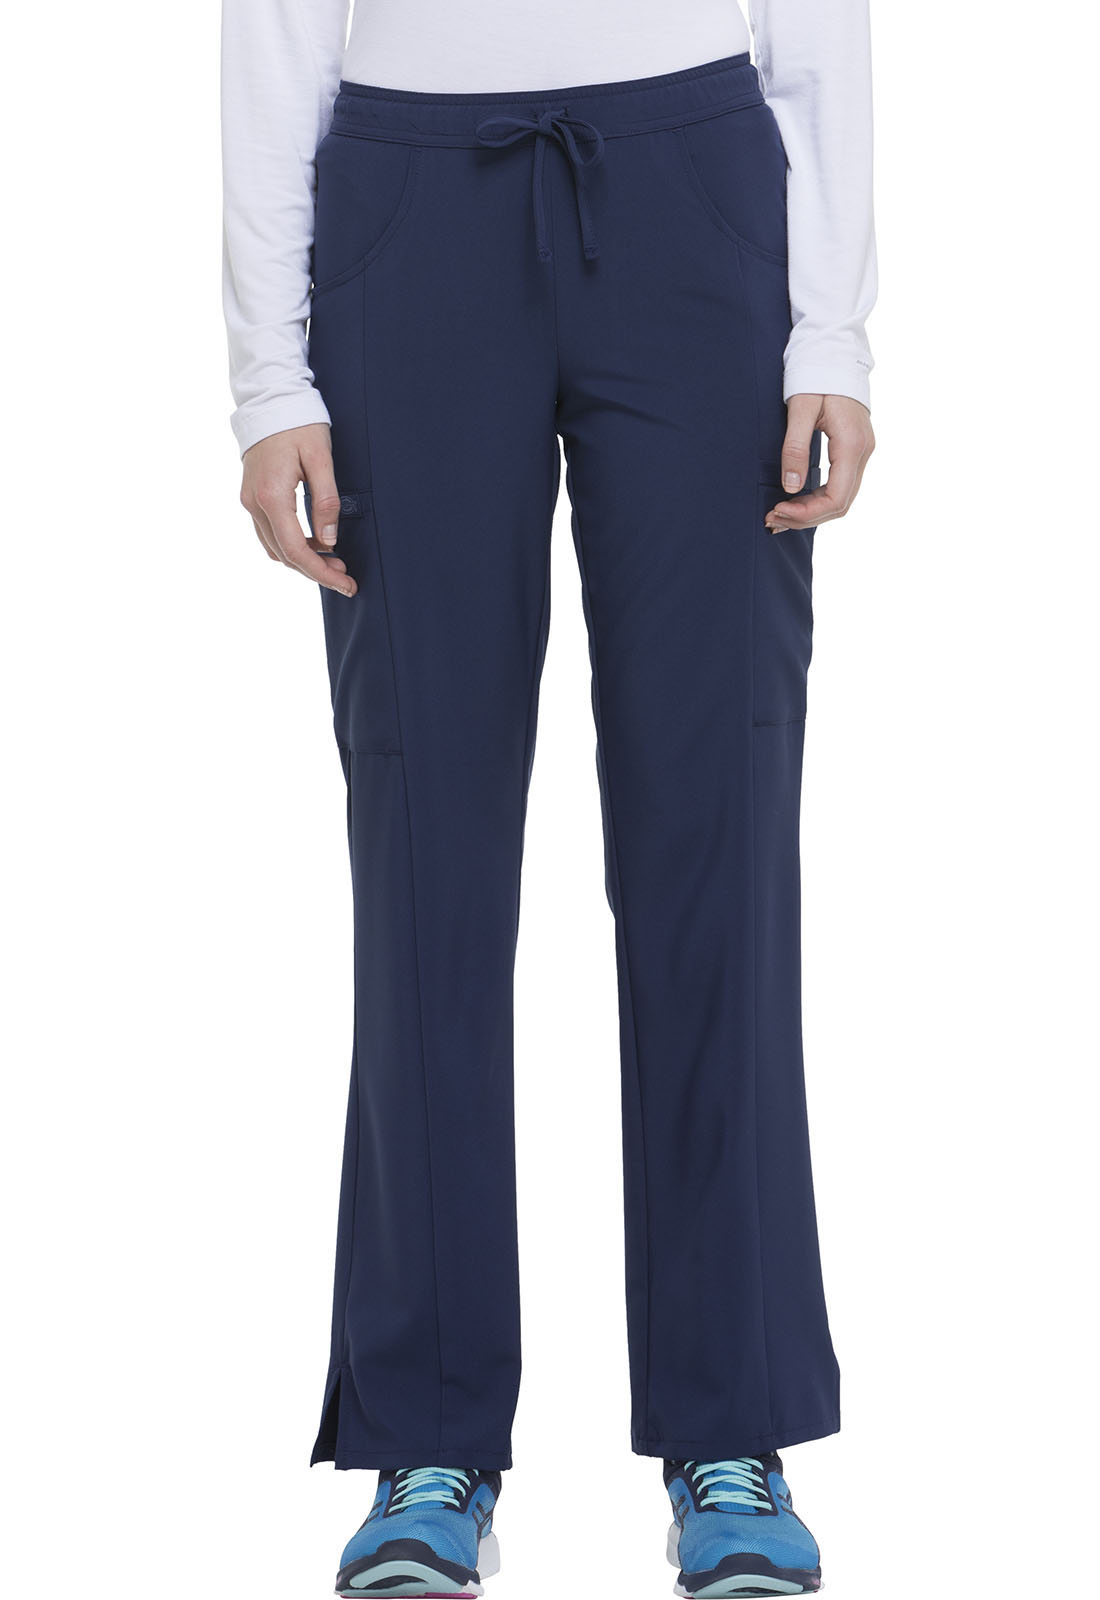 814bfcf6e8f EDS Essentials Mid Rise Straight Leg Drawstring Pant in Navy DK010T ...